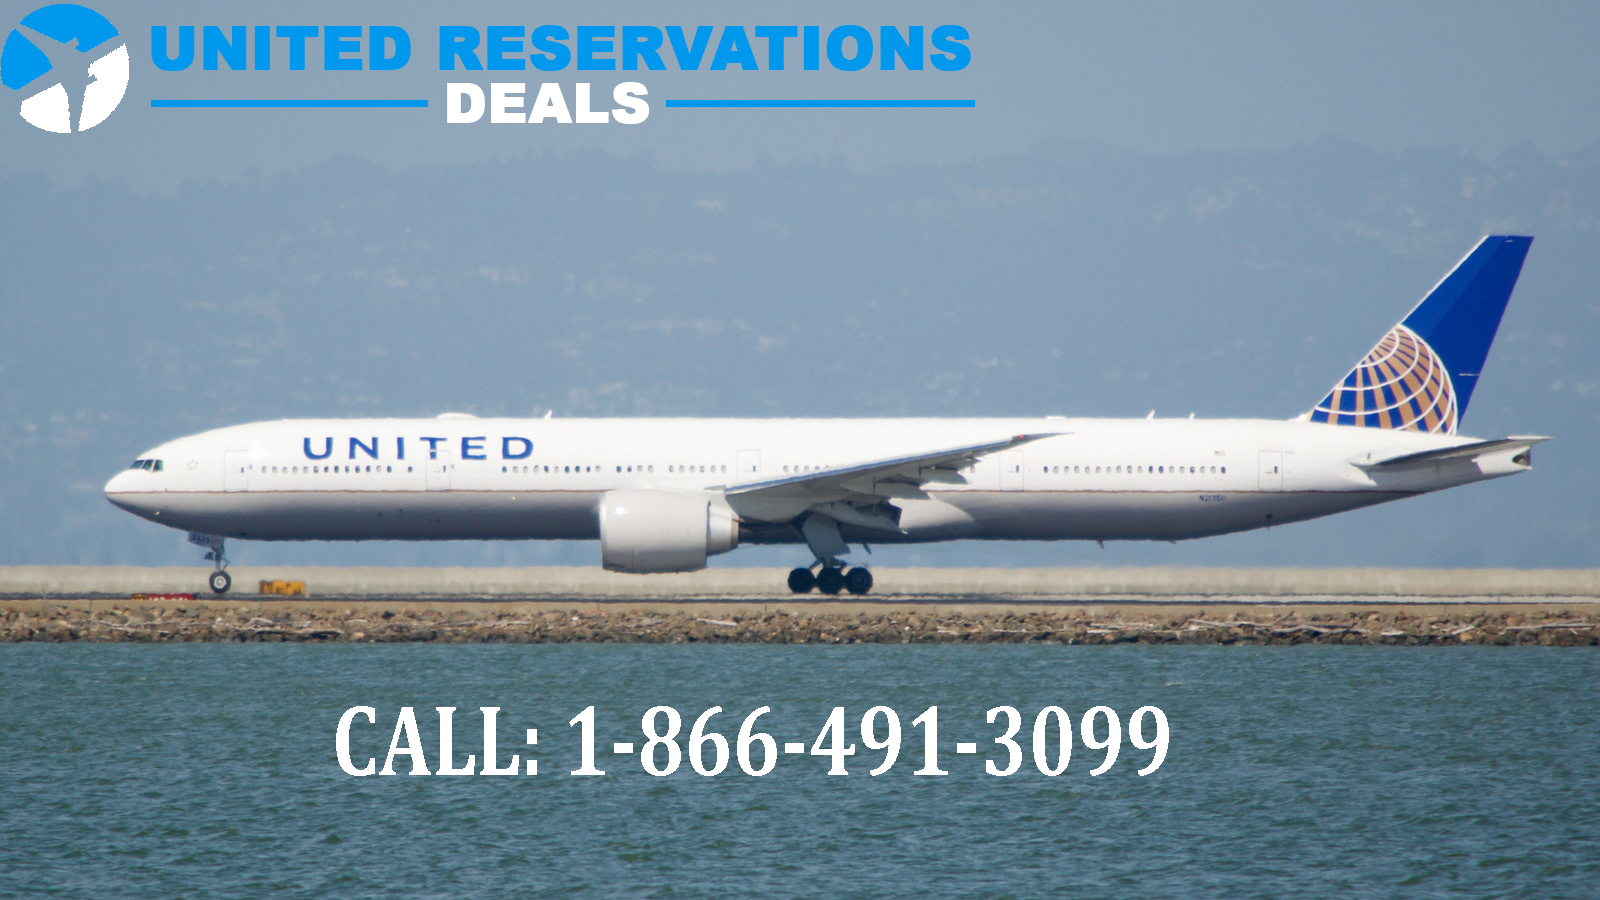 United Airlines is the secondlargest airline in the world